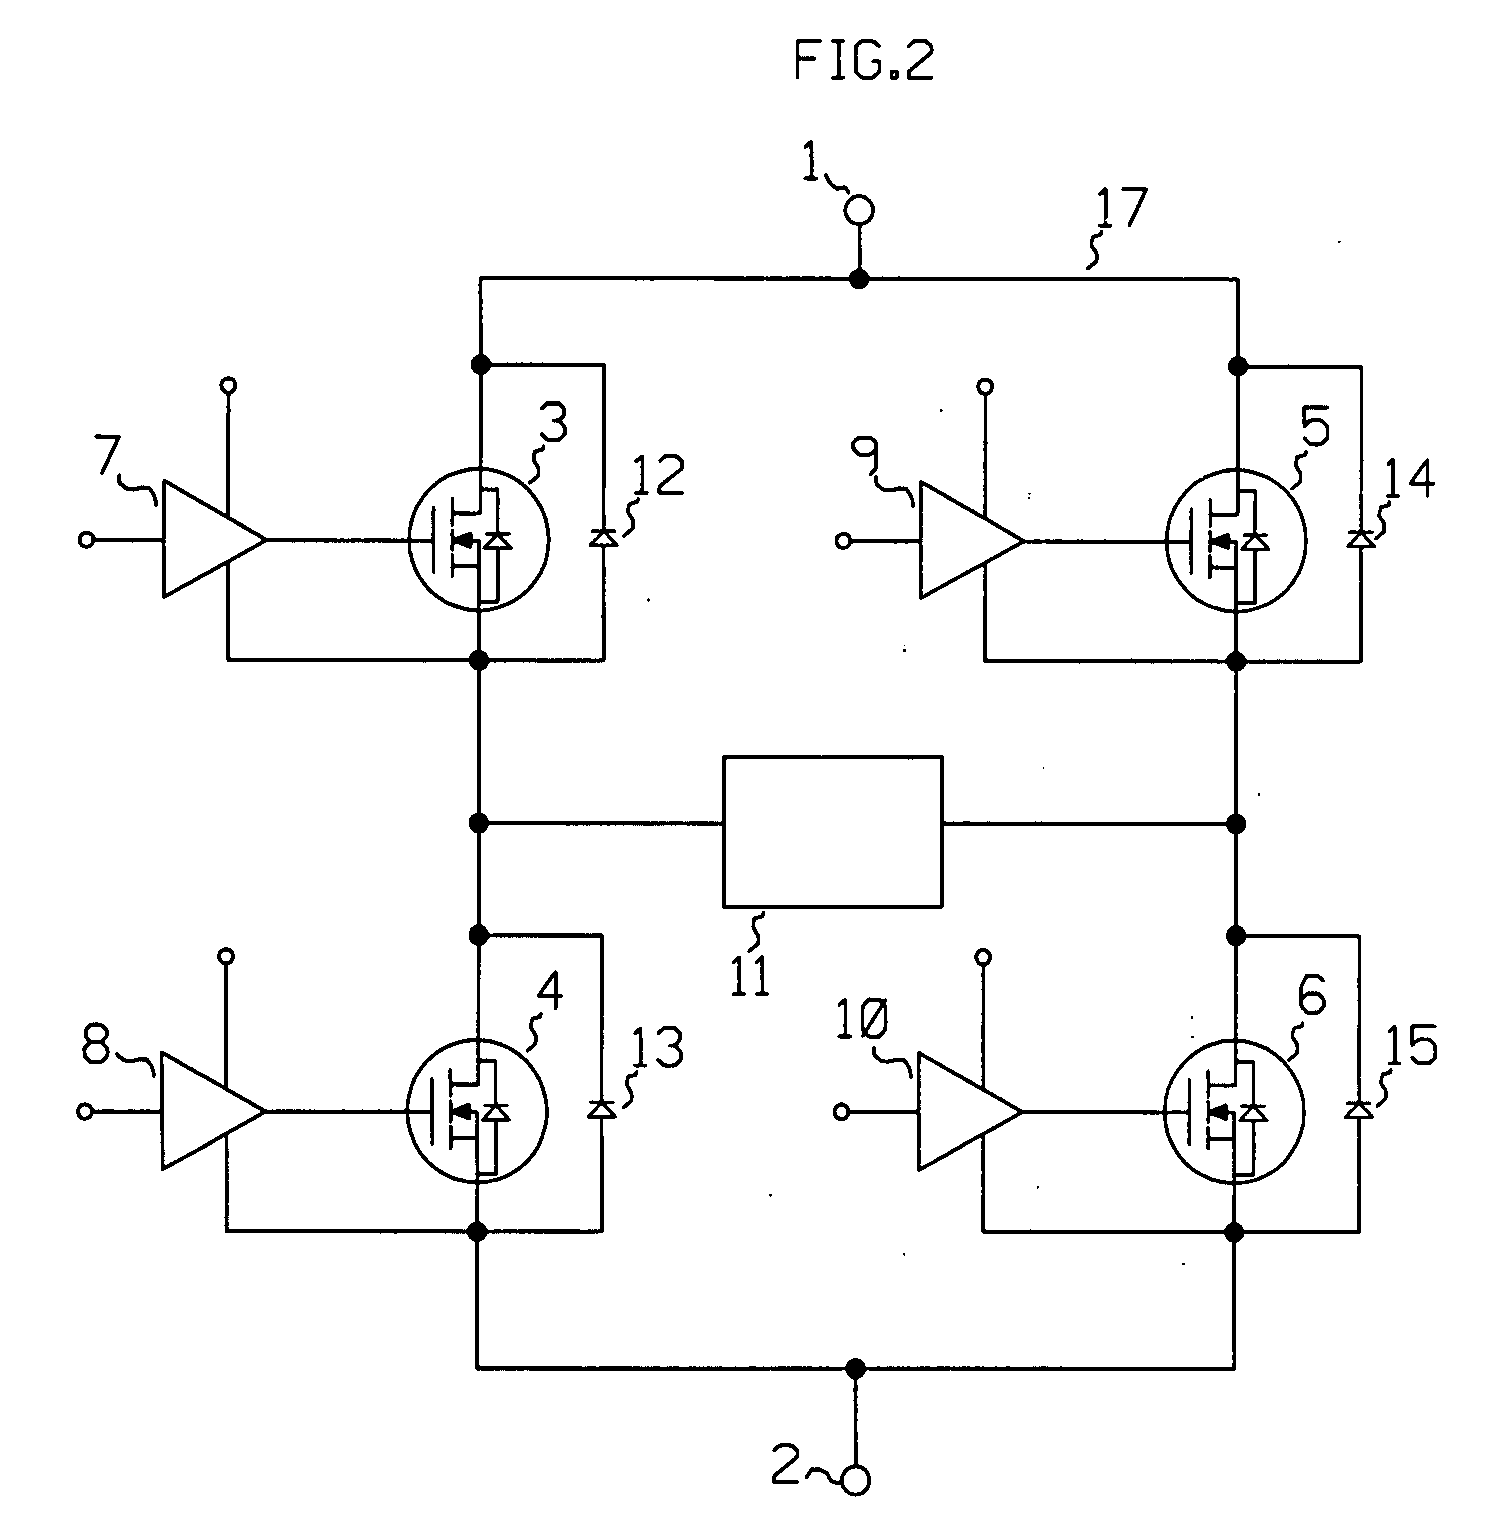 patent us20100254221 - h-bridge pulse generator